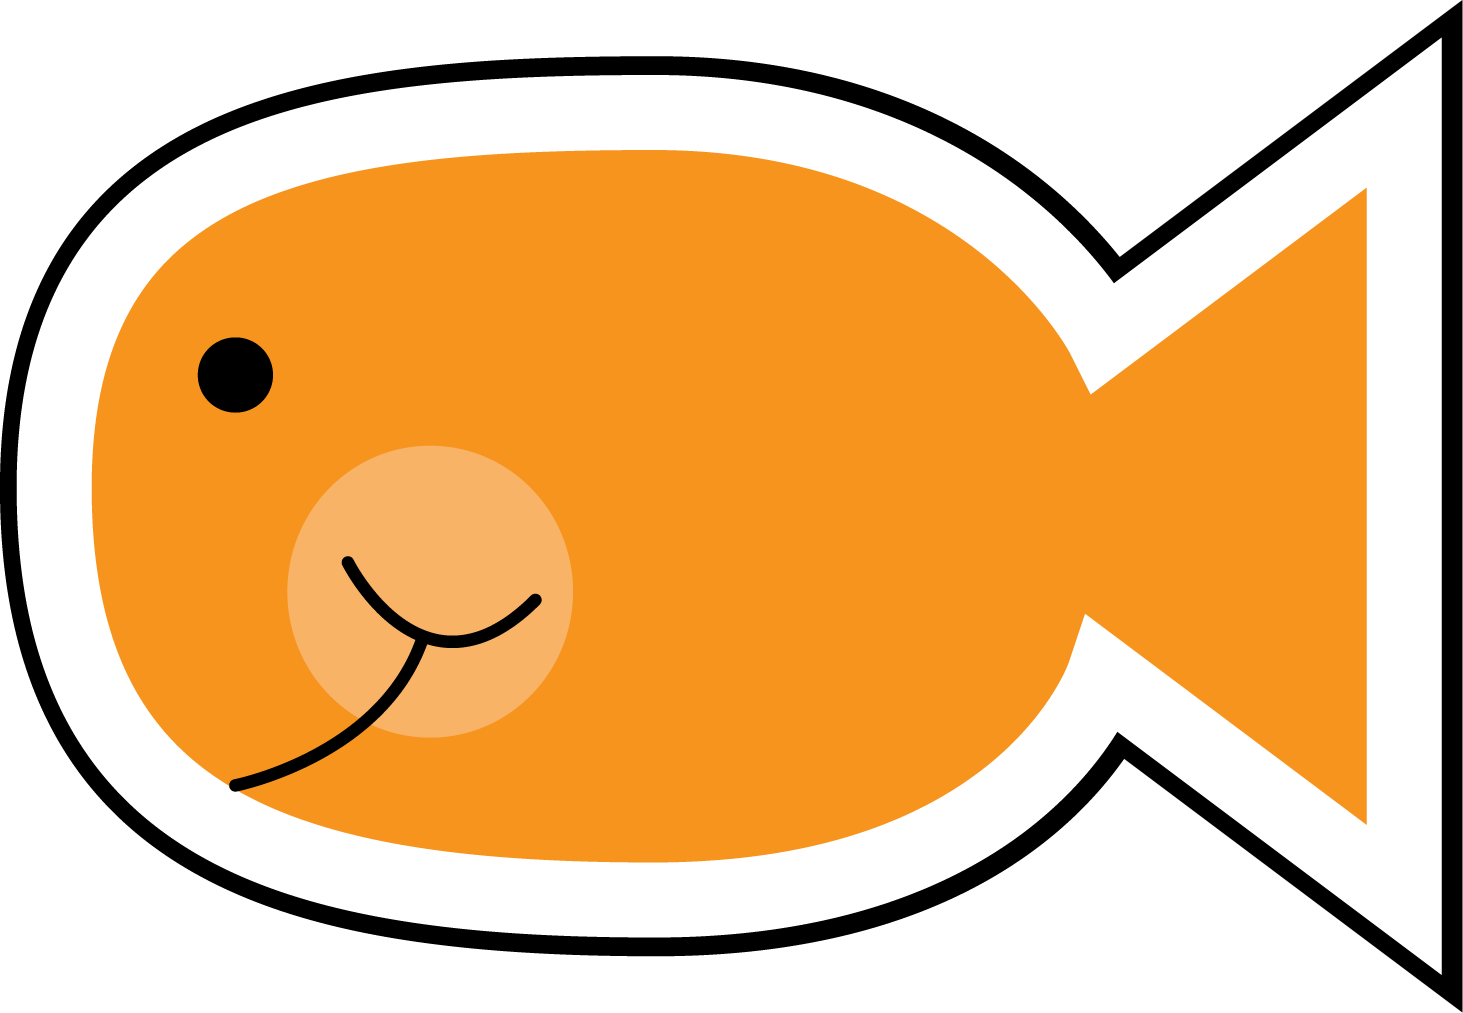 Goldfish cracker png. Collection of drawing